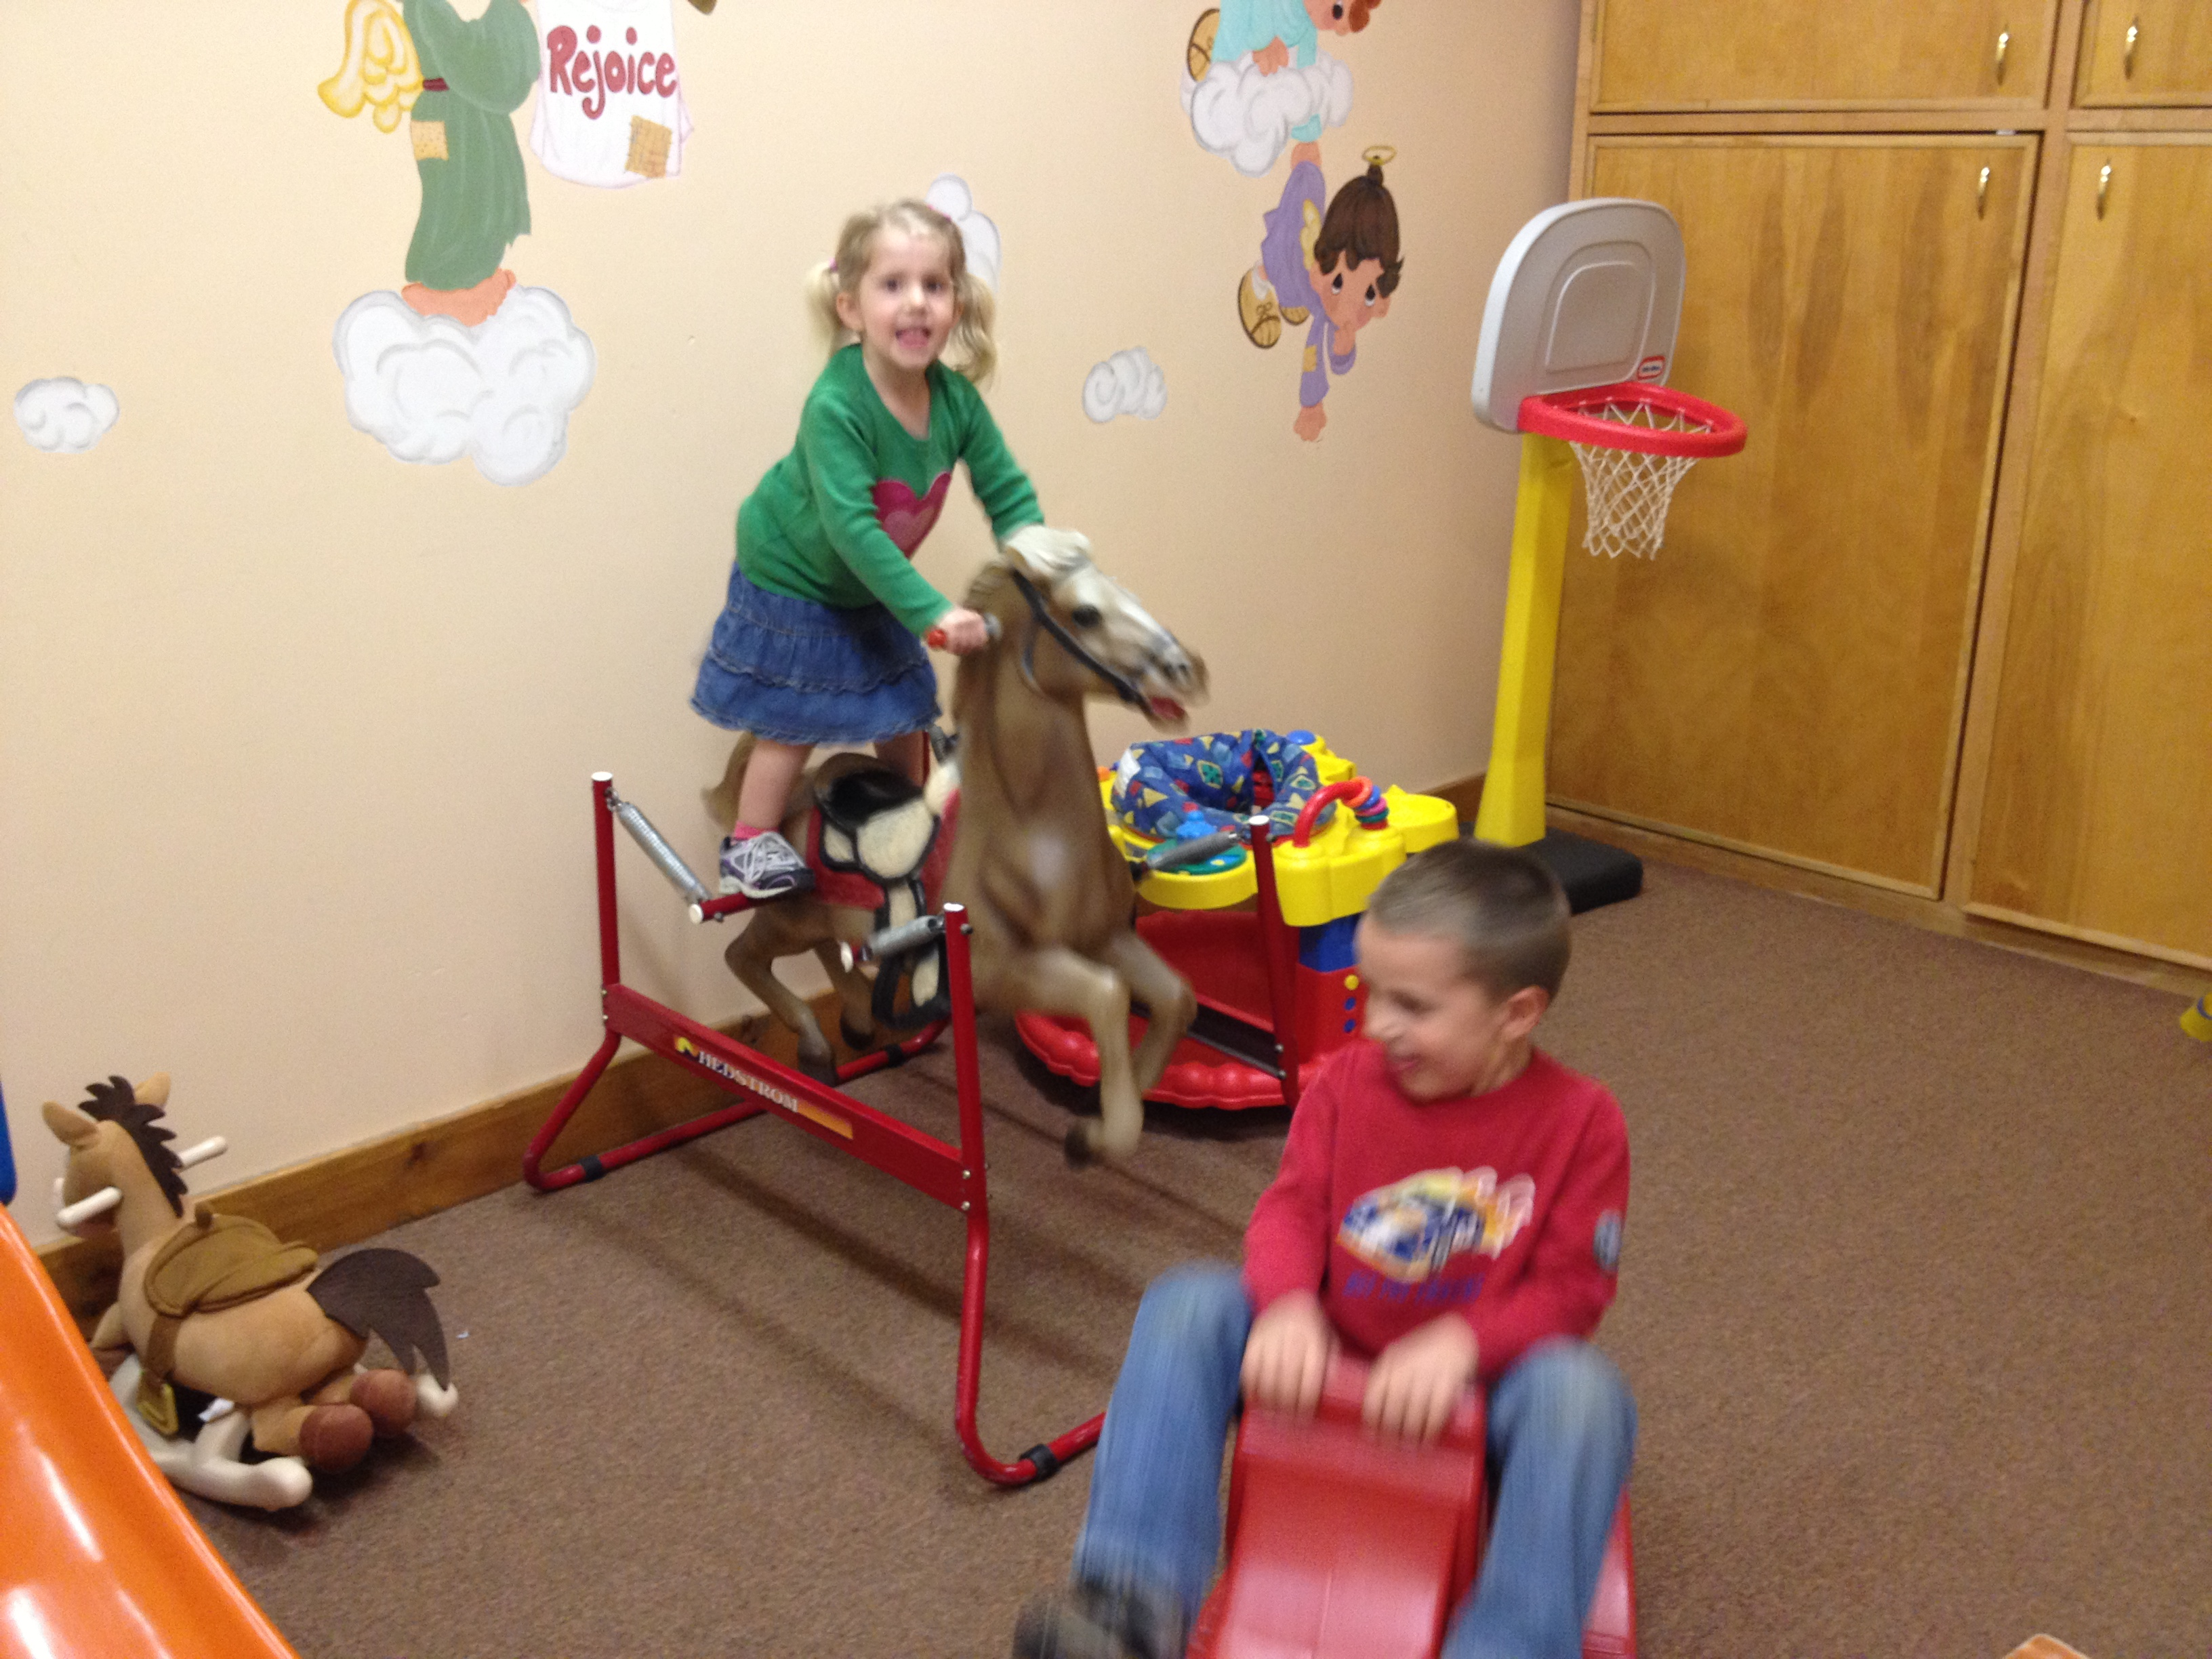 During basketball the kids played in the nursery & had a blast.